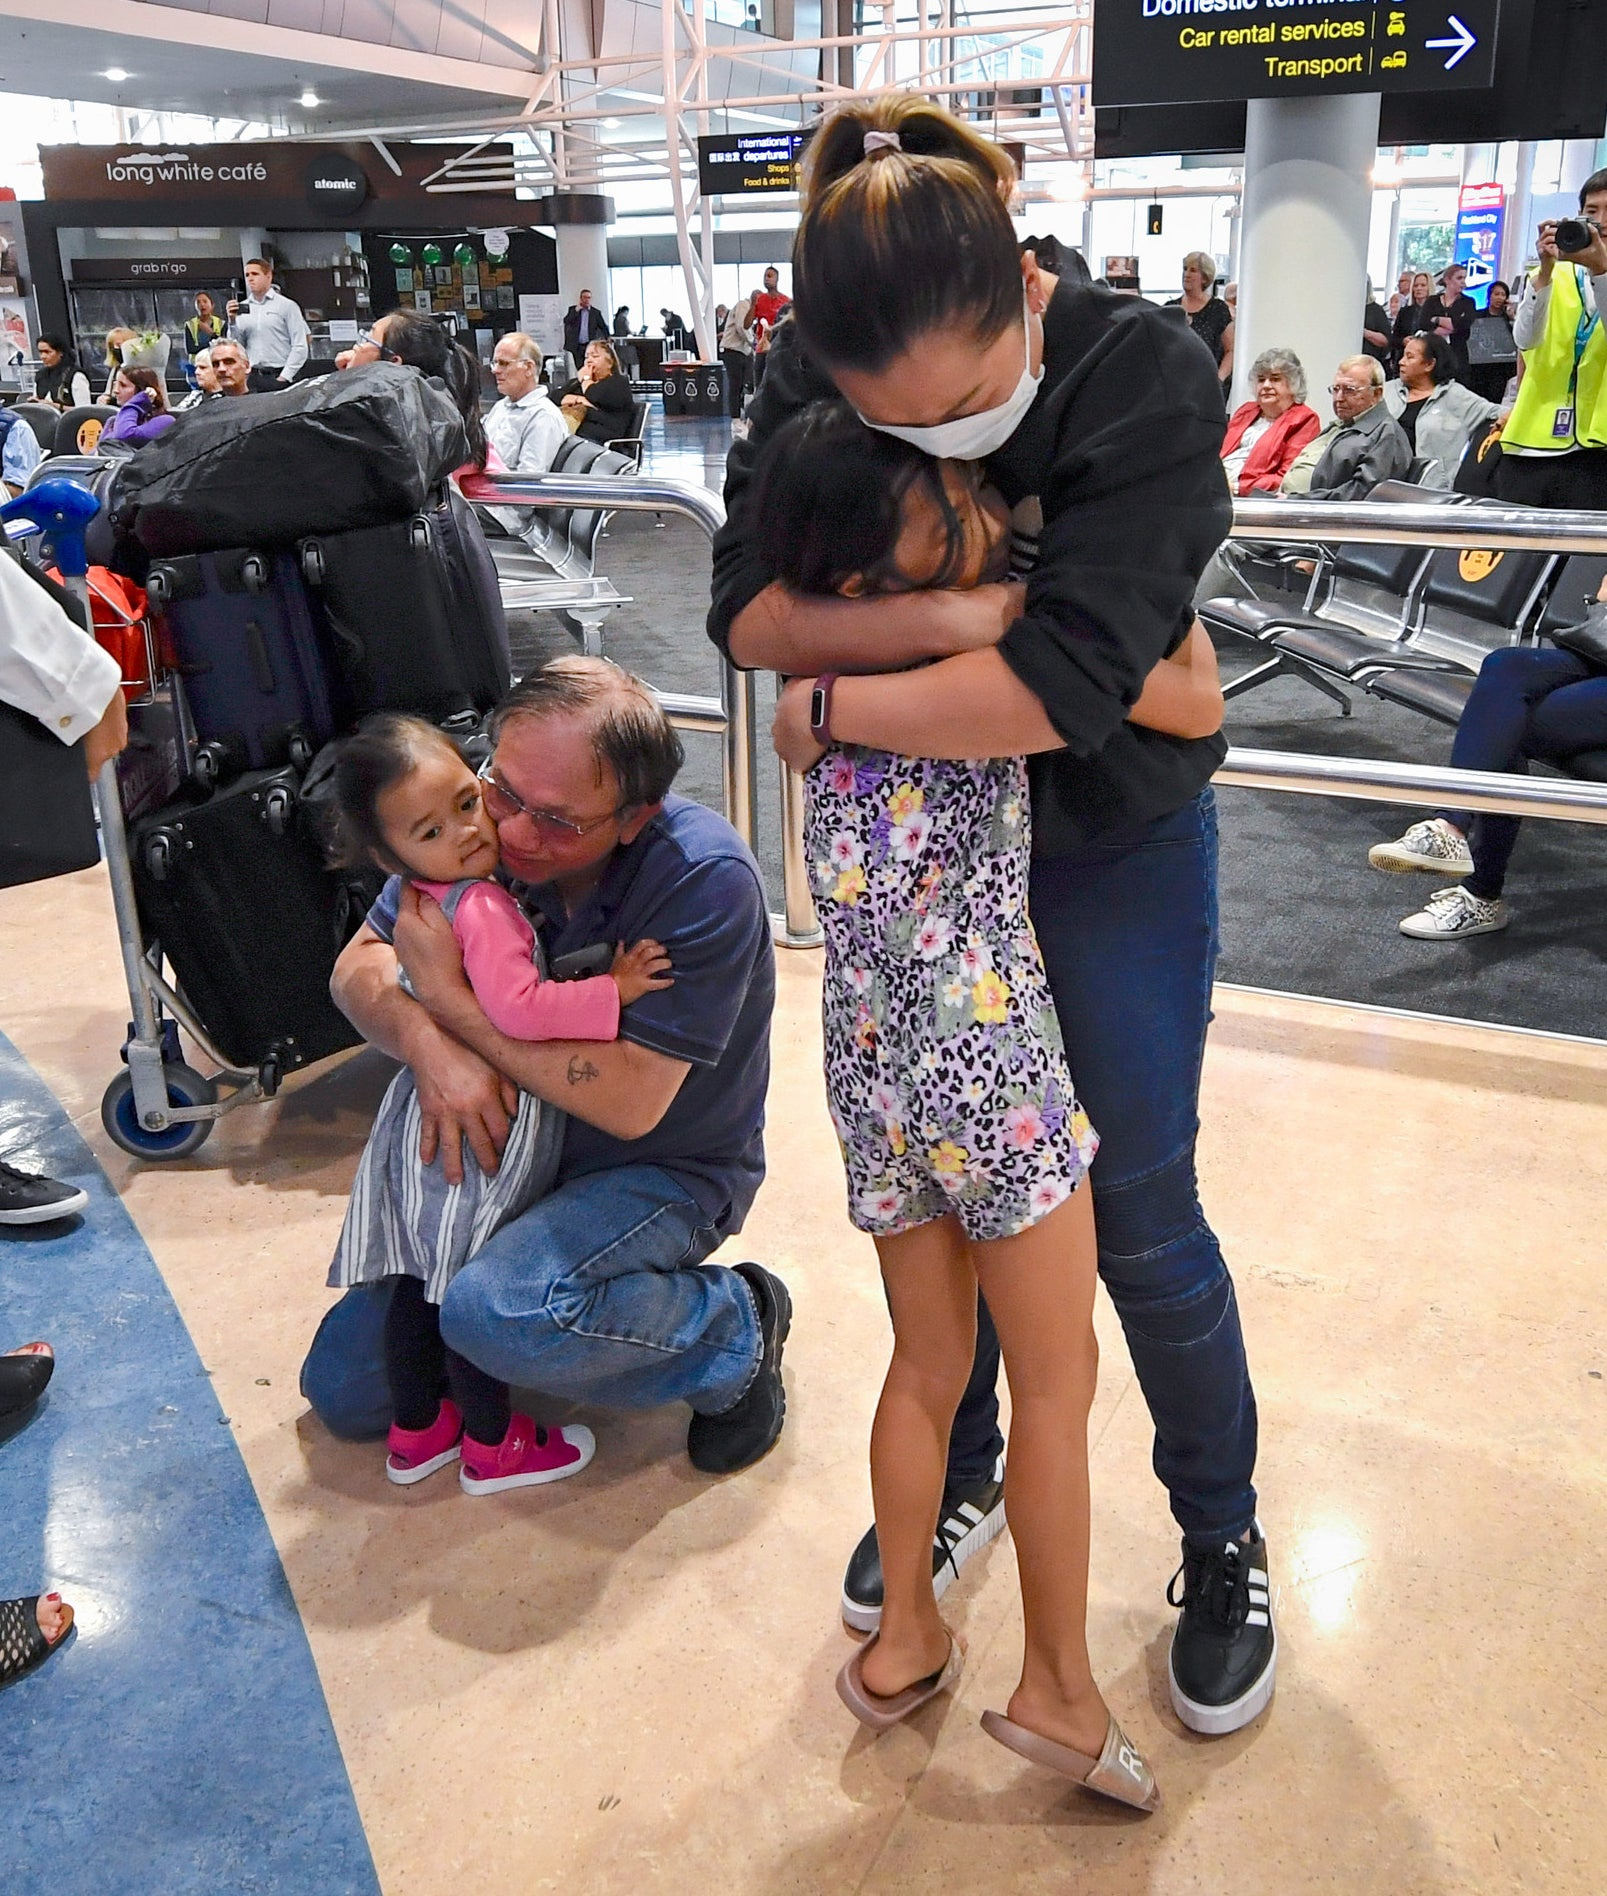 Two adults hugging children